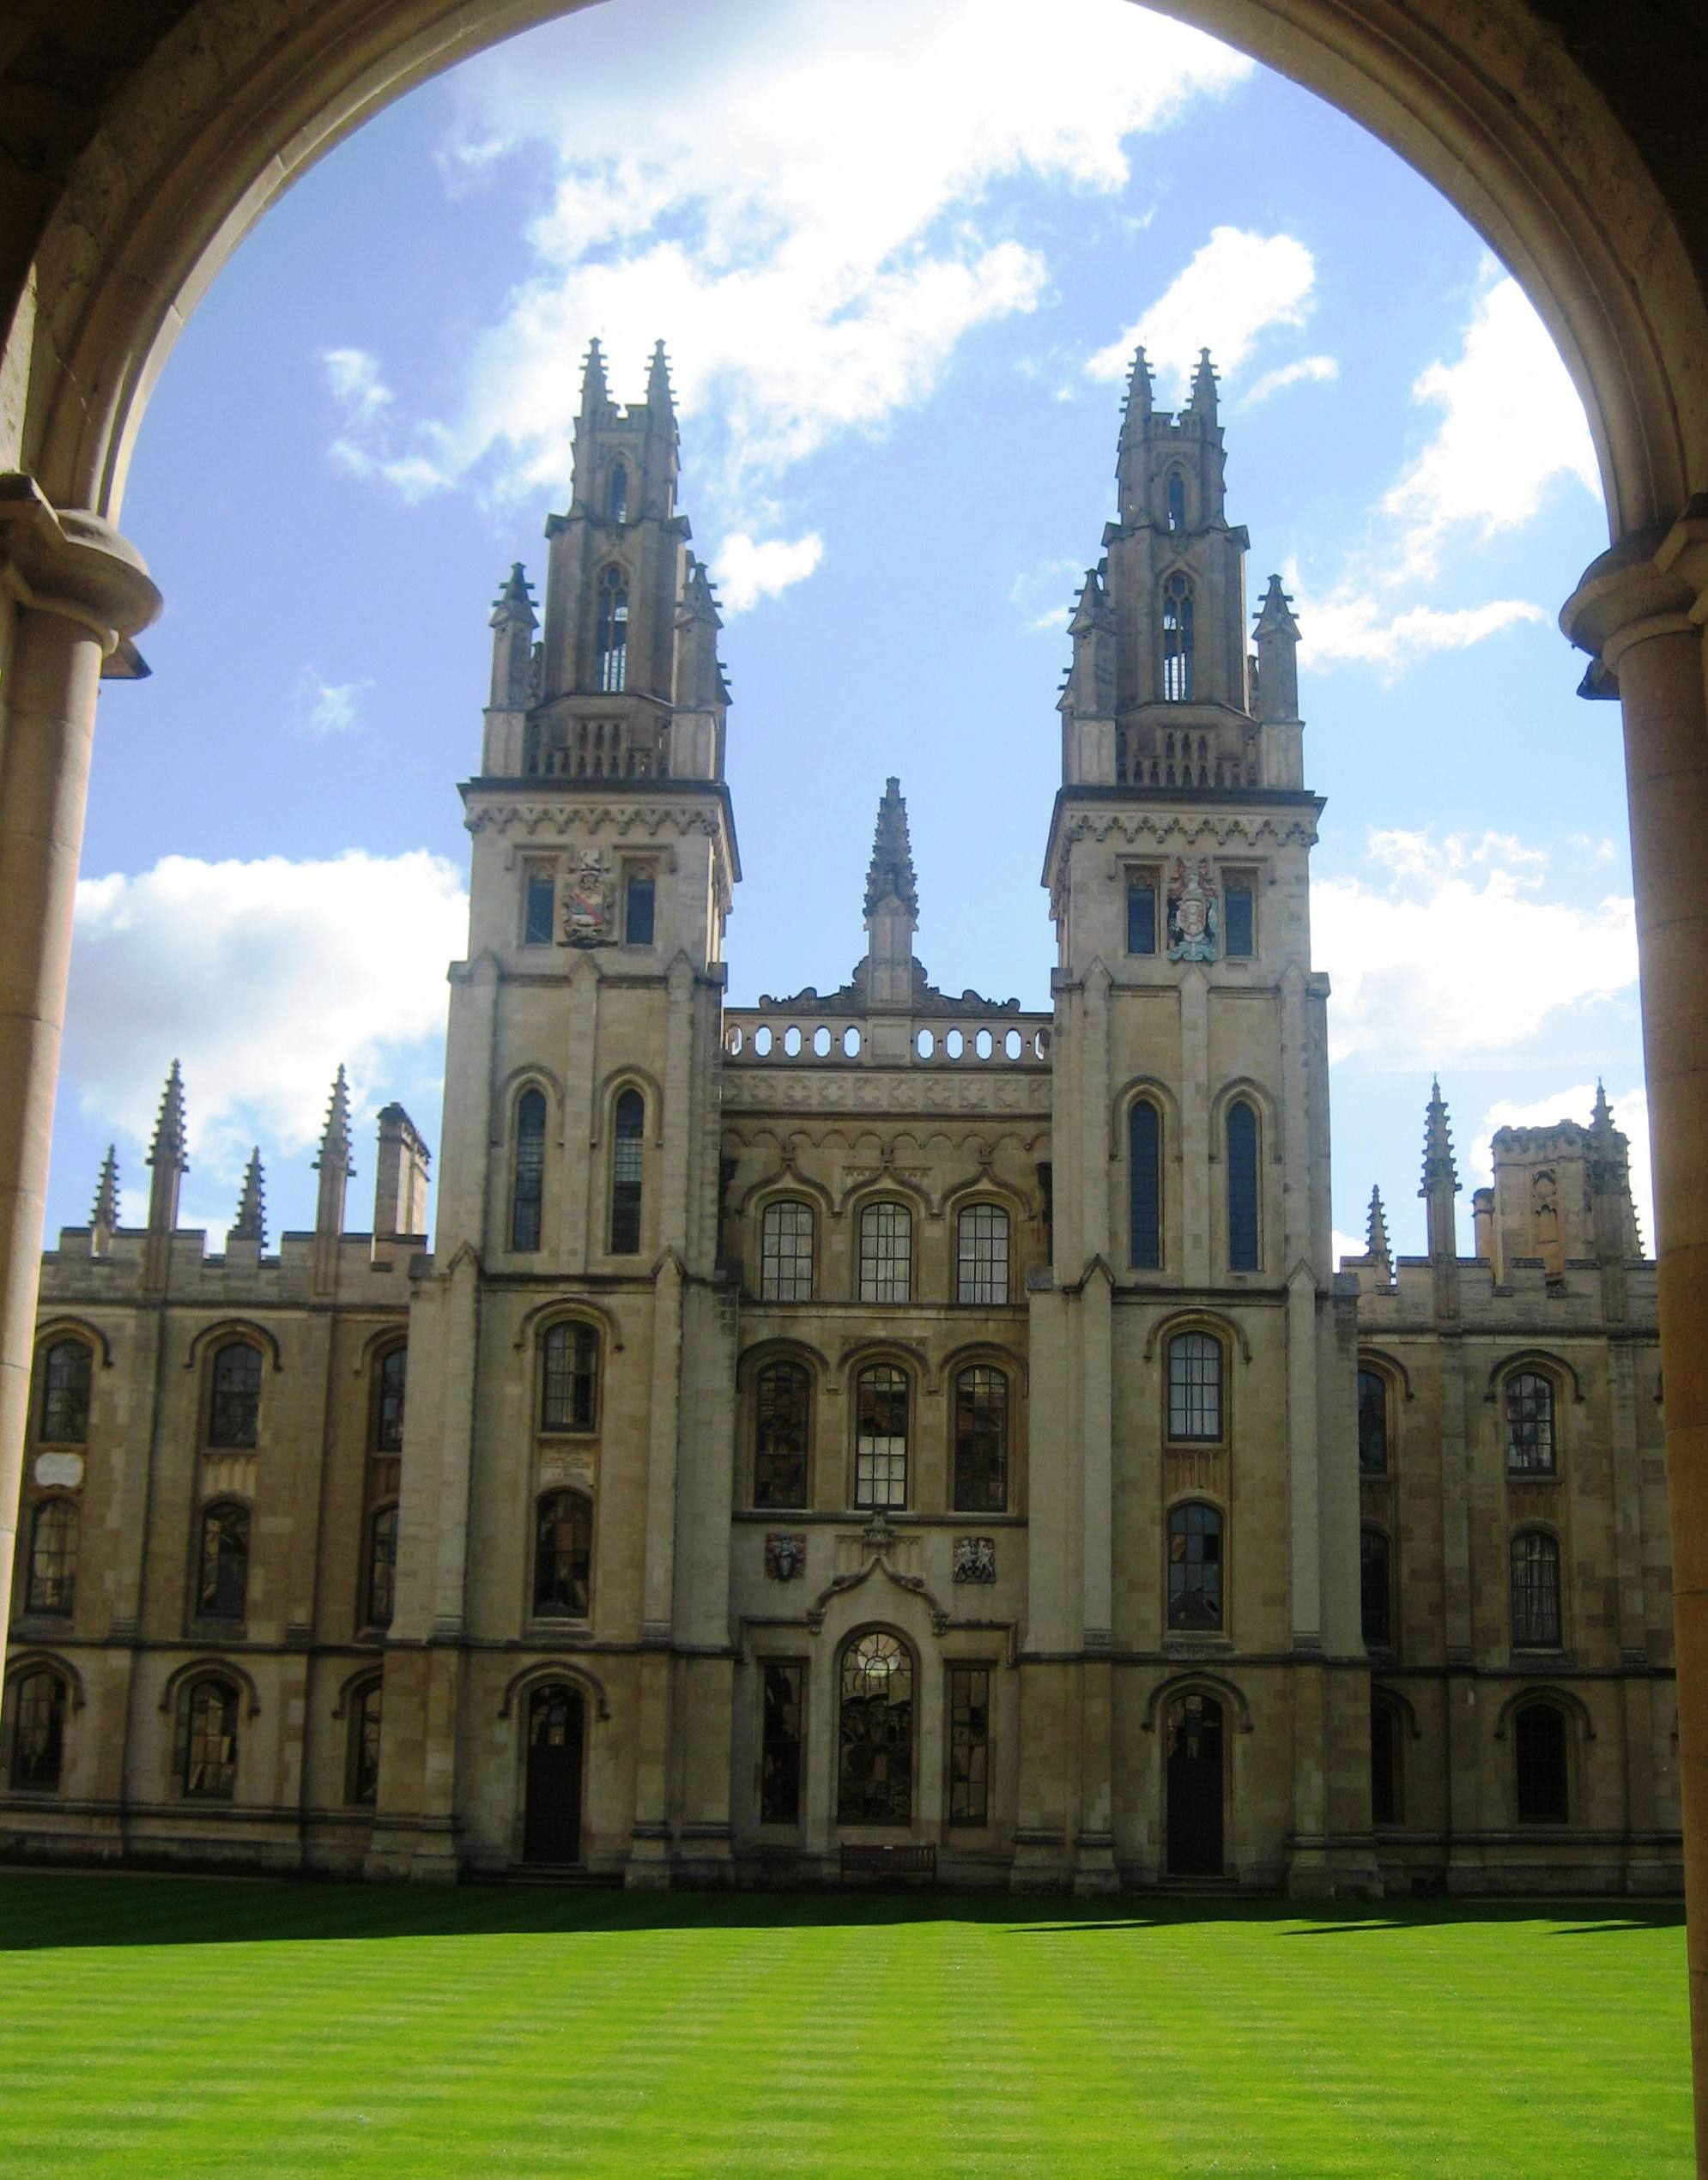 View of All Souls College